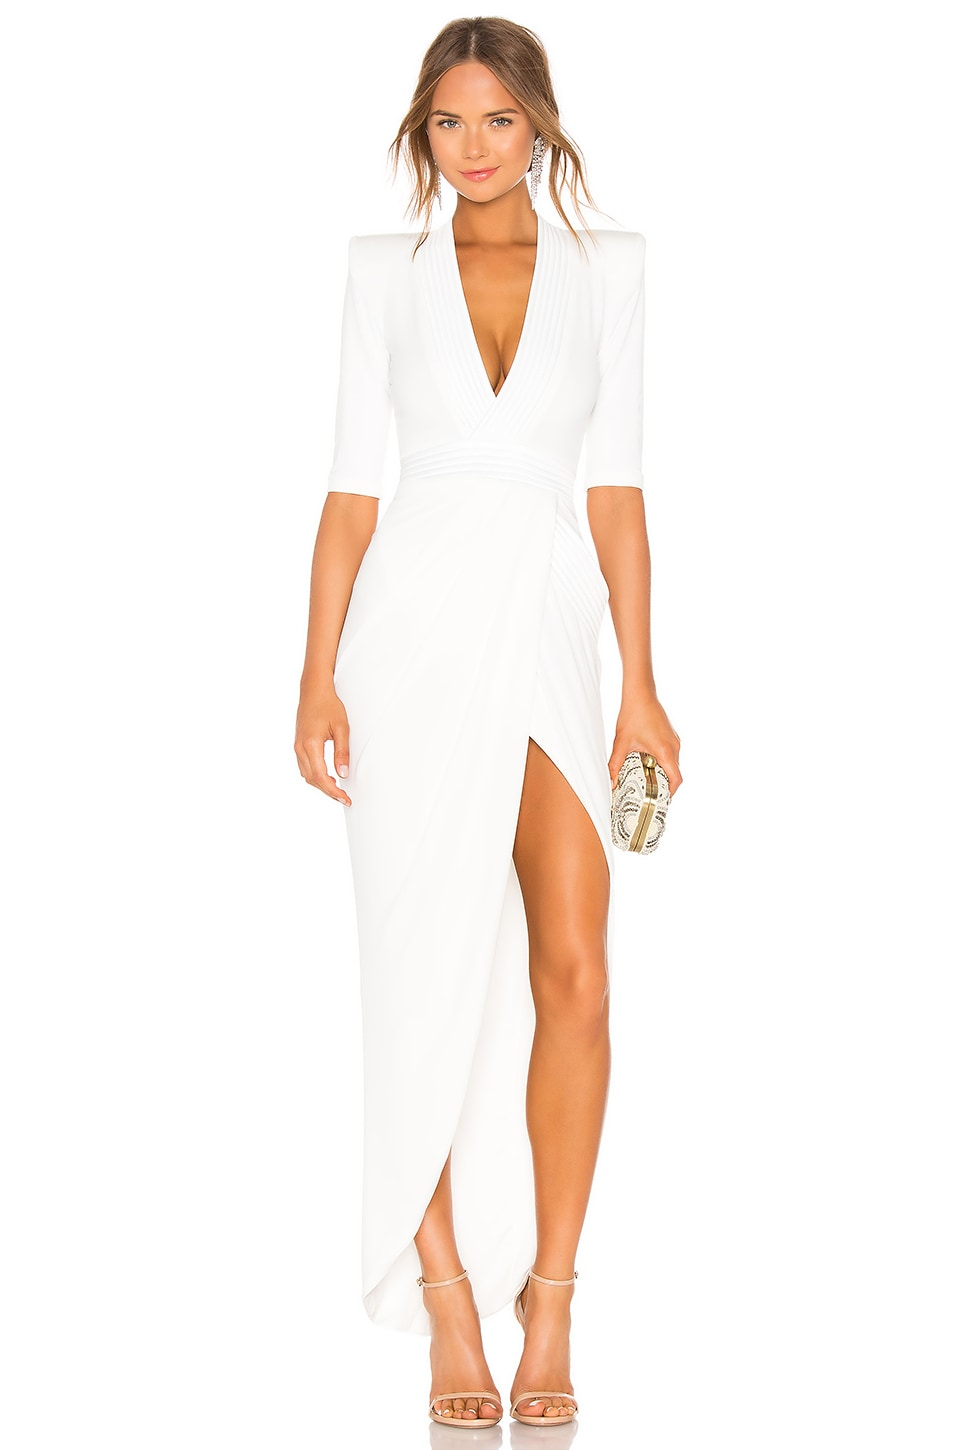 Zhivago Eye of Horus Gown in White